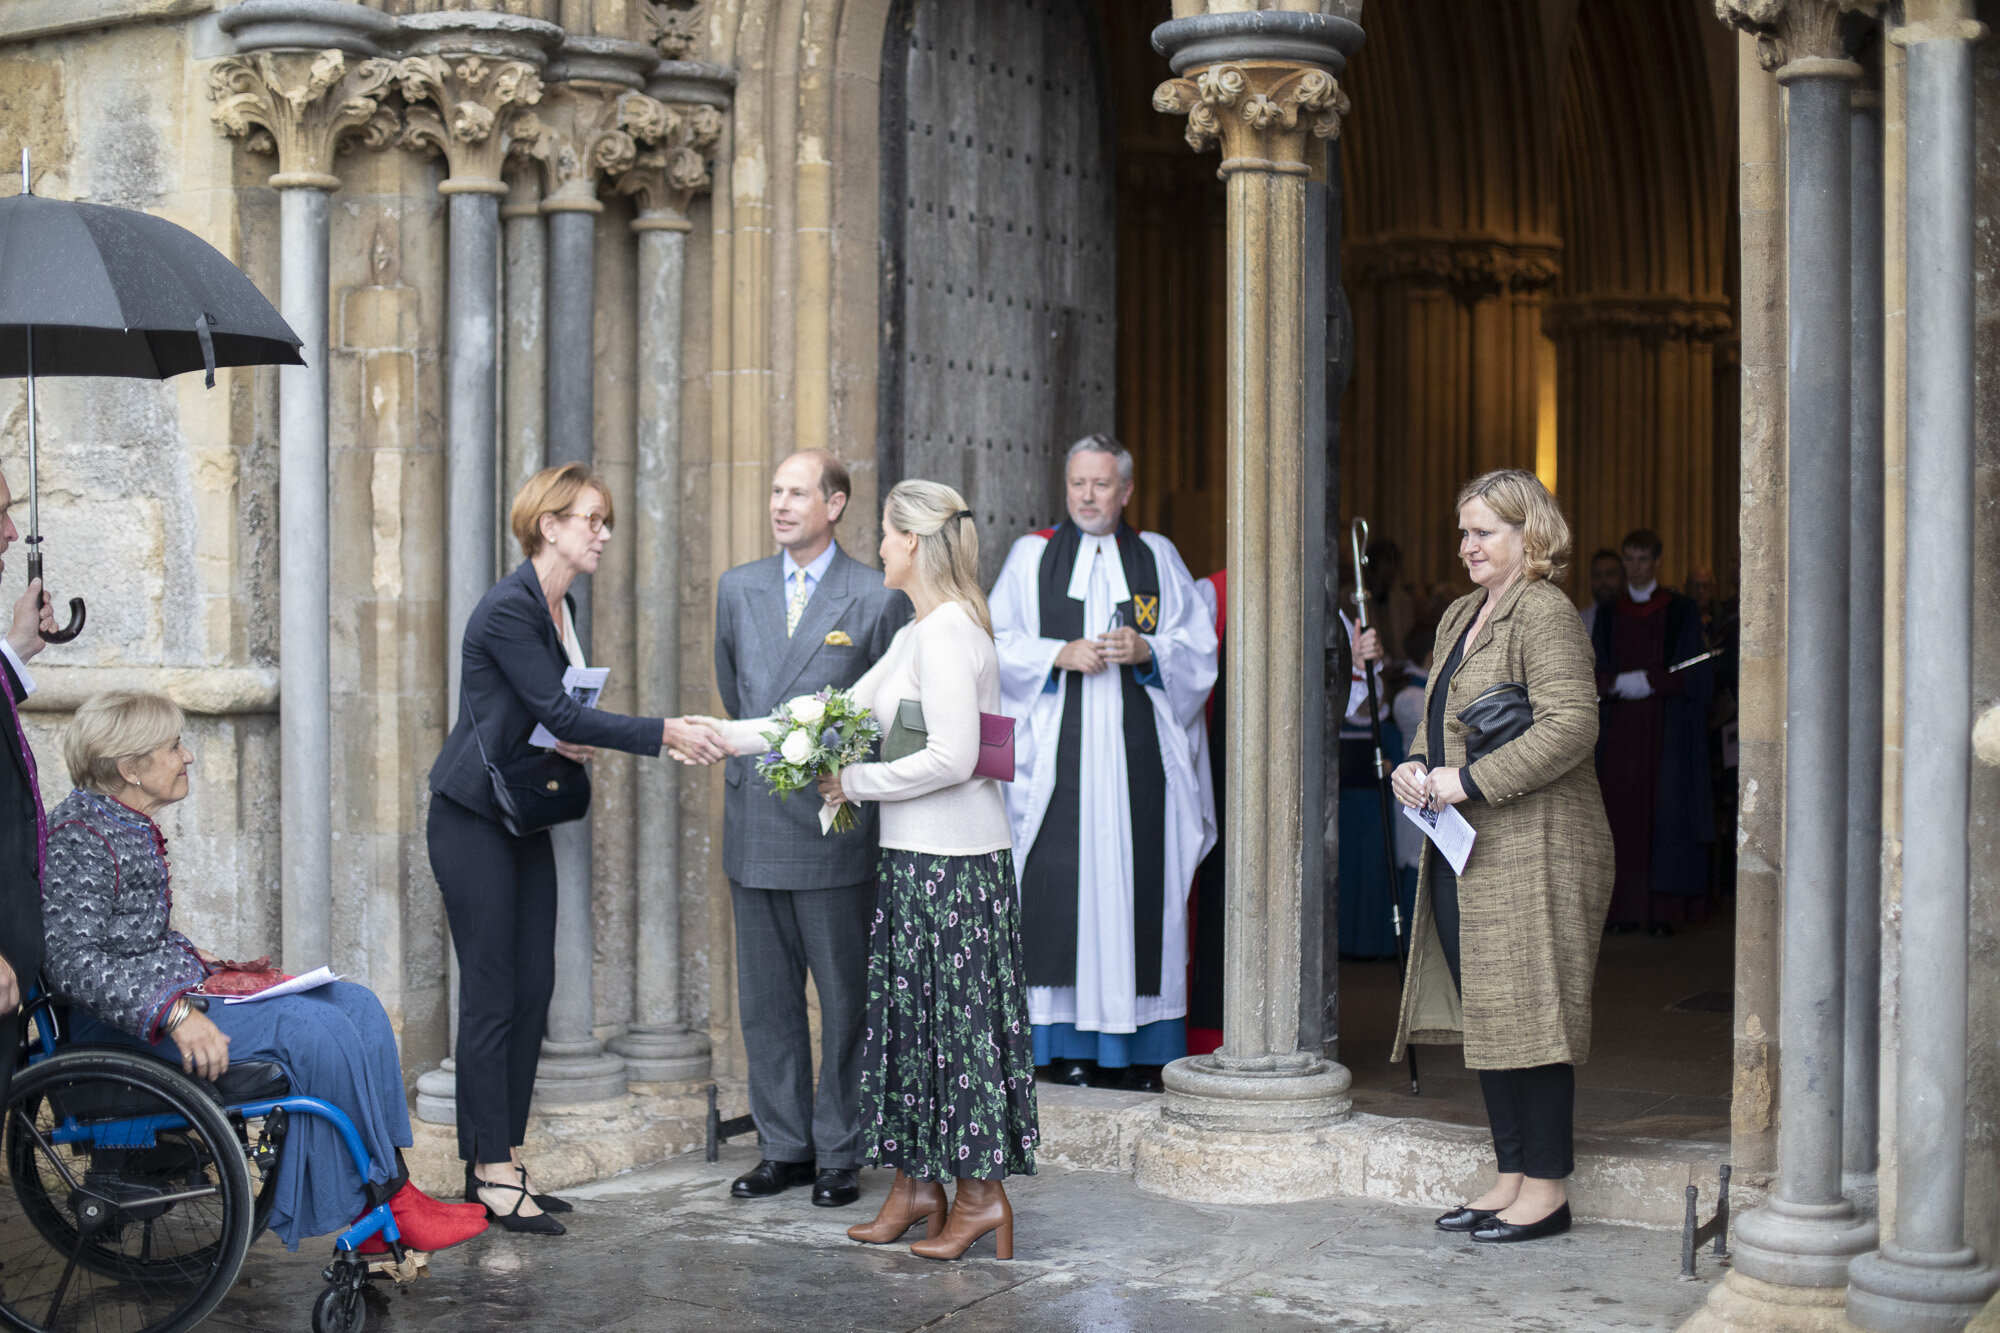 The Countess of Wessex visits Wells Cathedral Chorister Trust - September 2019 30.jpg